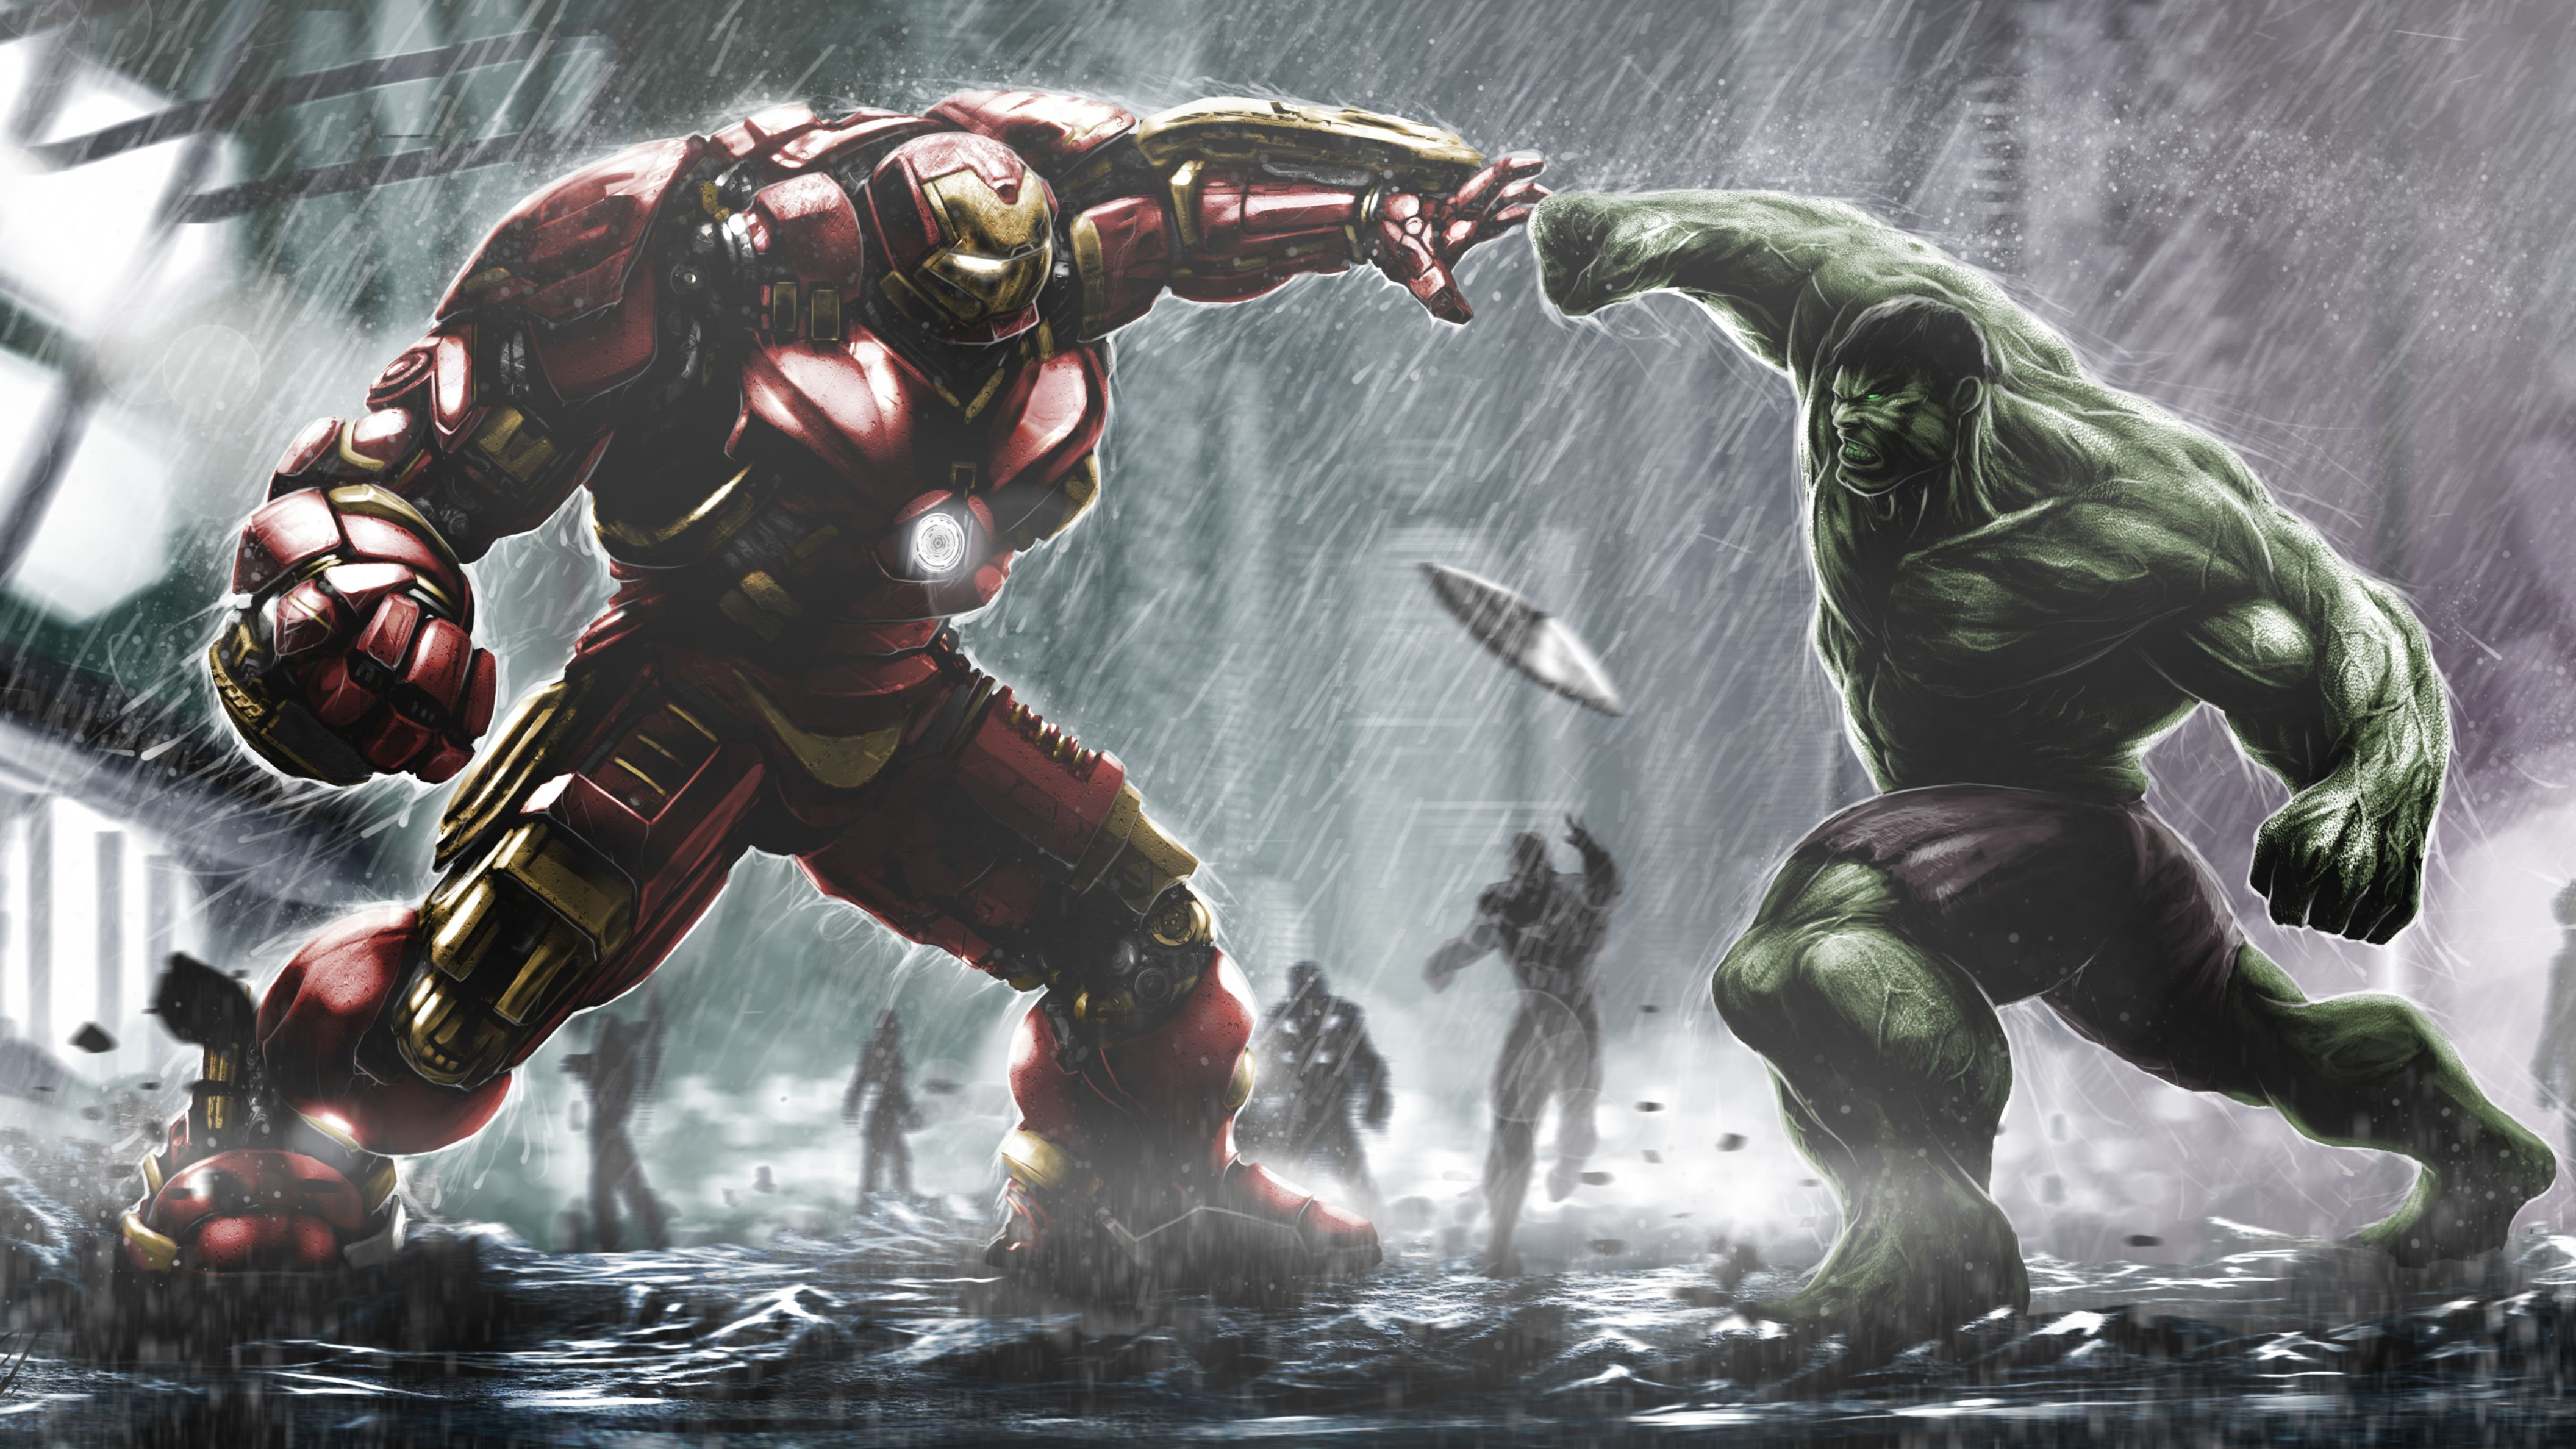 Download free HD Hulkbuster Ironman Vs Hulk HD Wallpaper, image